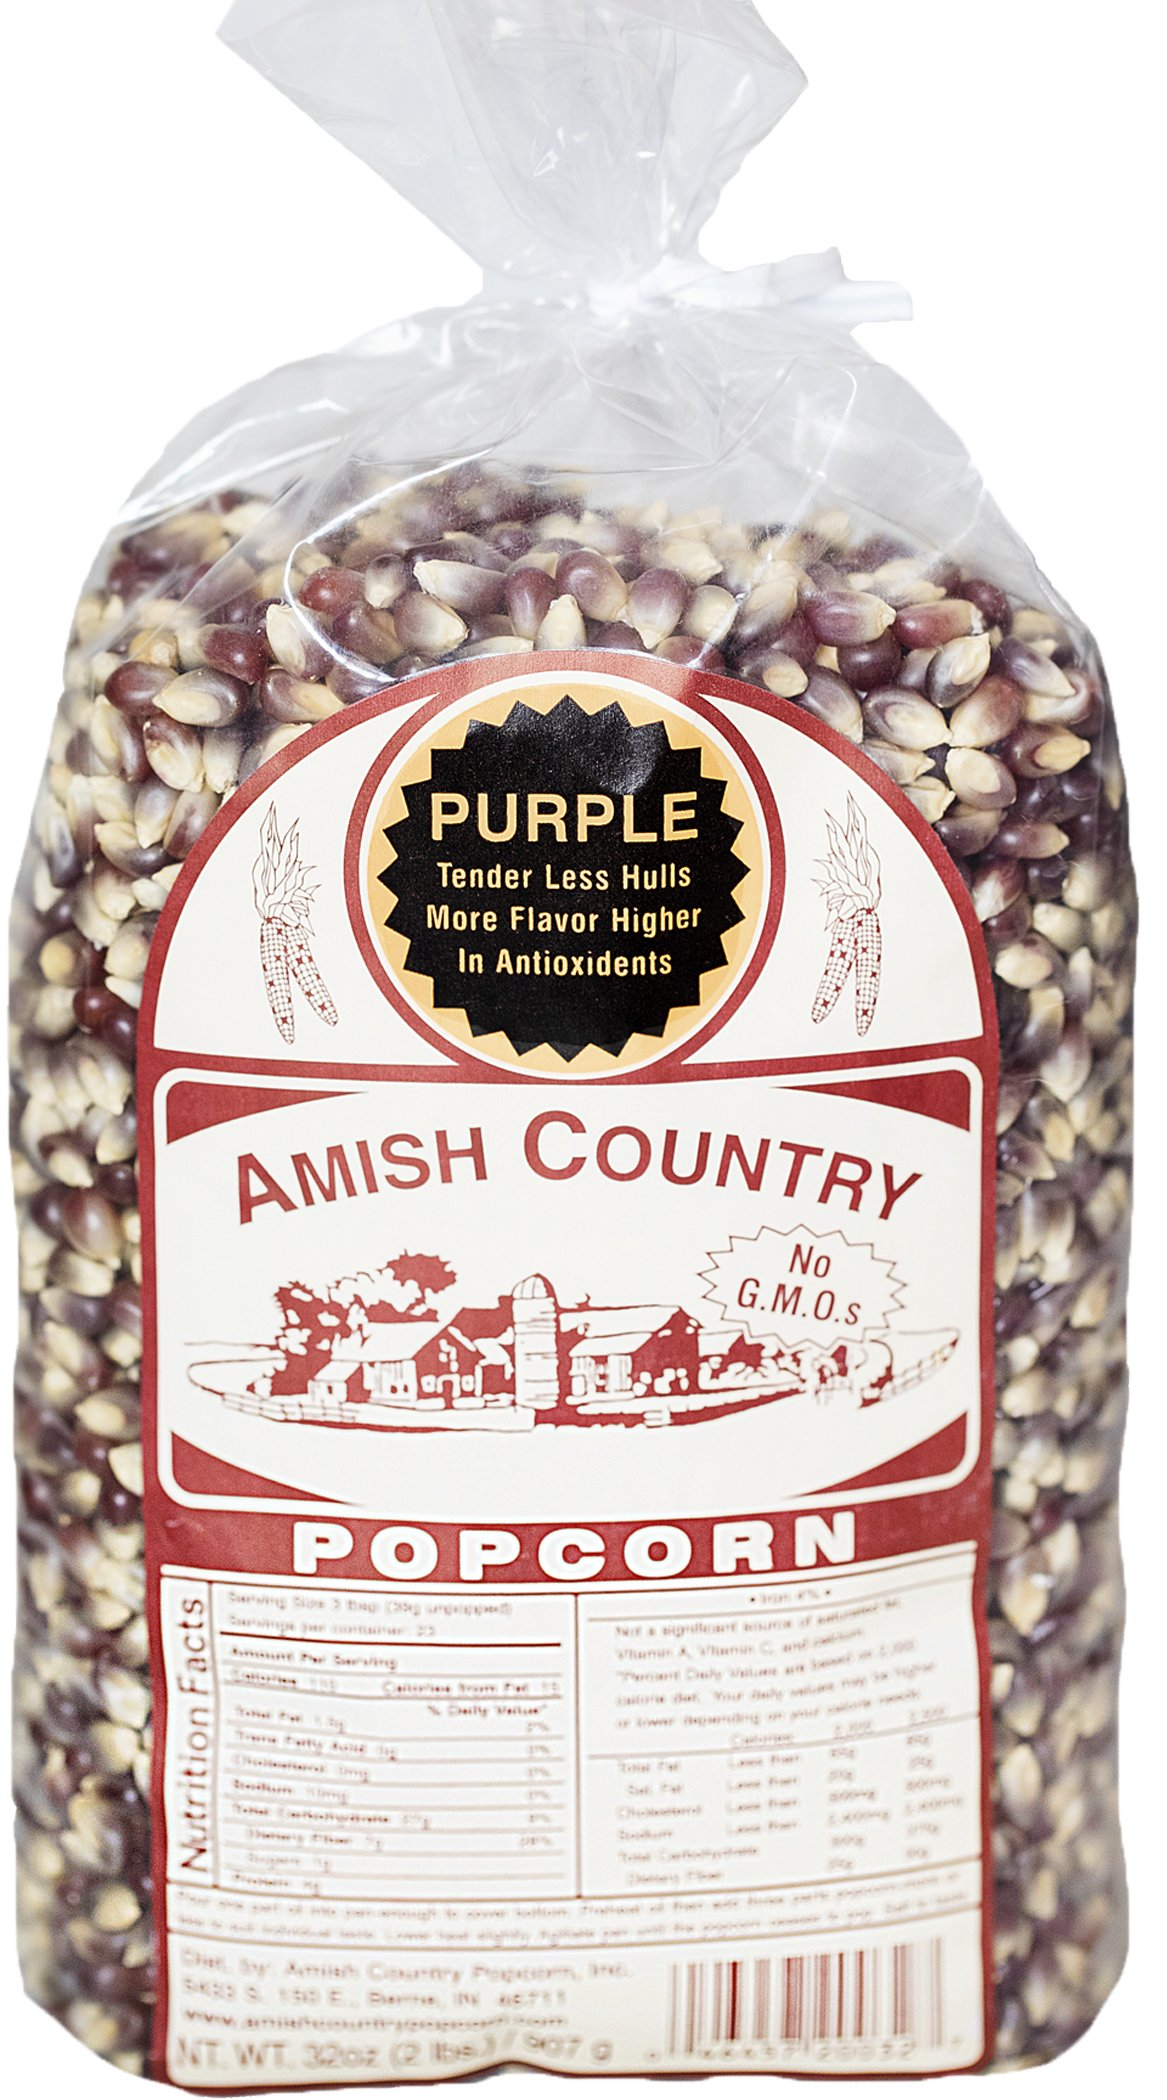 Amish Country Popcorn - Purple Kernels (2 Pound Bag) with Recipe Guide - Old Fashioned, Non GMO, Gluten Free, Microwaveable, Stovetop and Air Popper Friendly by Amish Country Popcorn